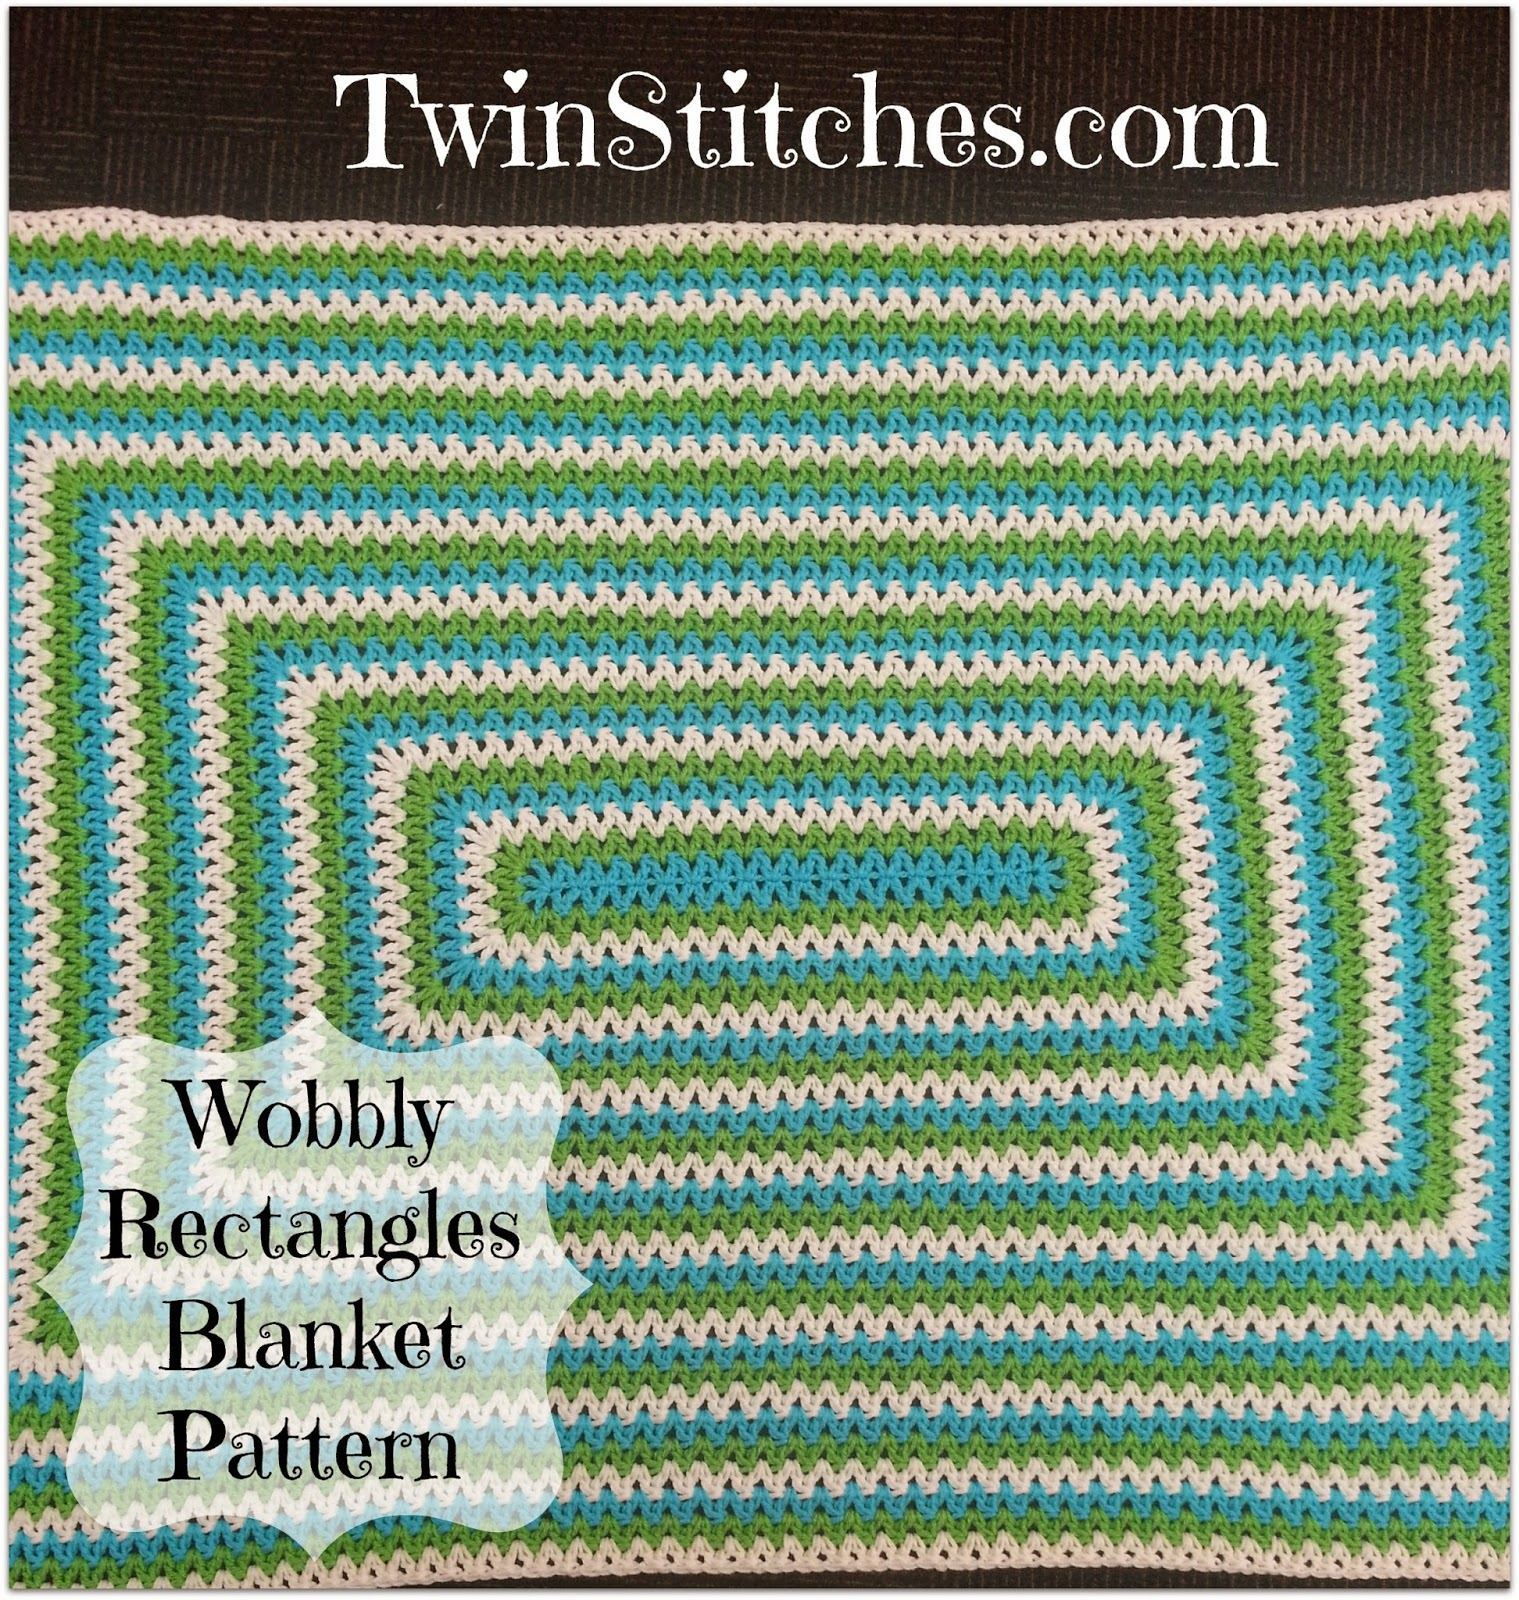 Tw-In Stitches: Wobbly Rectangles Blanket - Free Pattern | Tw-In ...